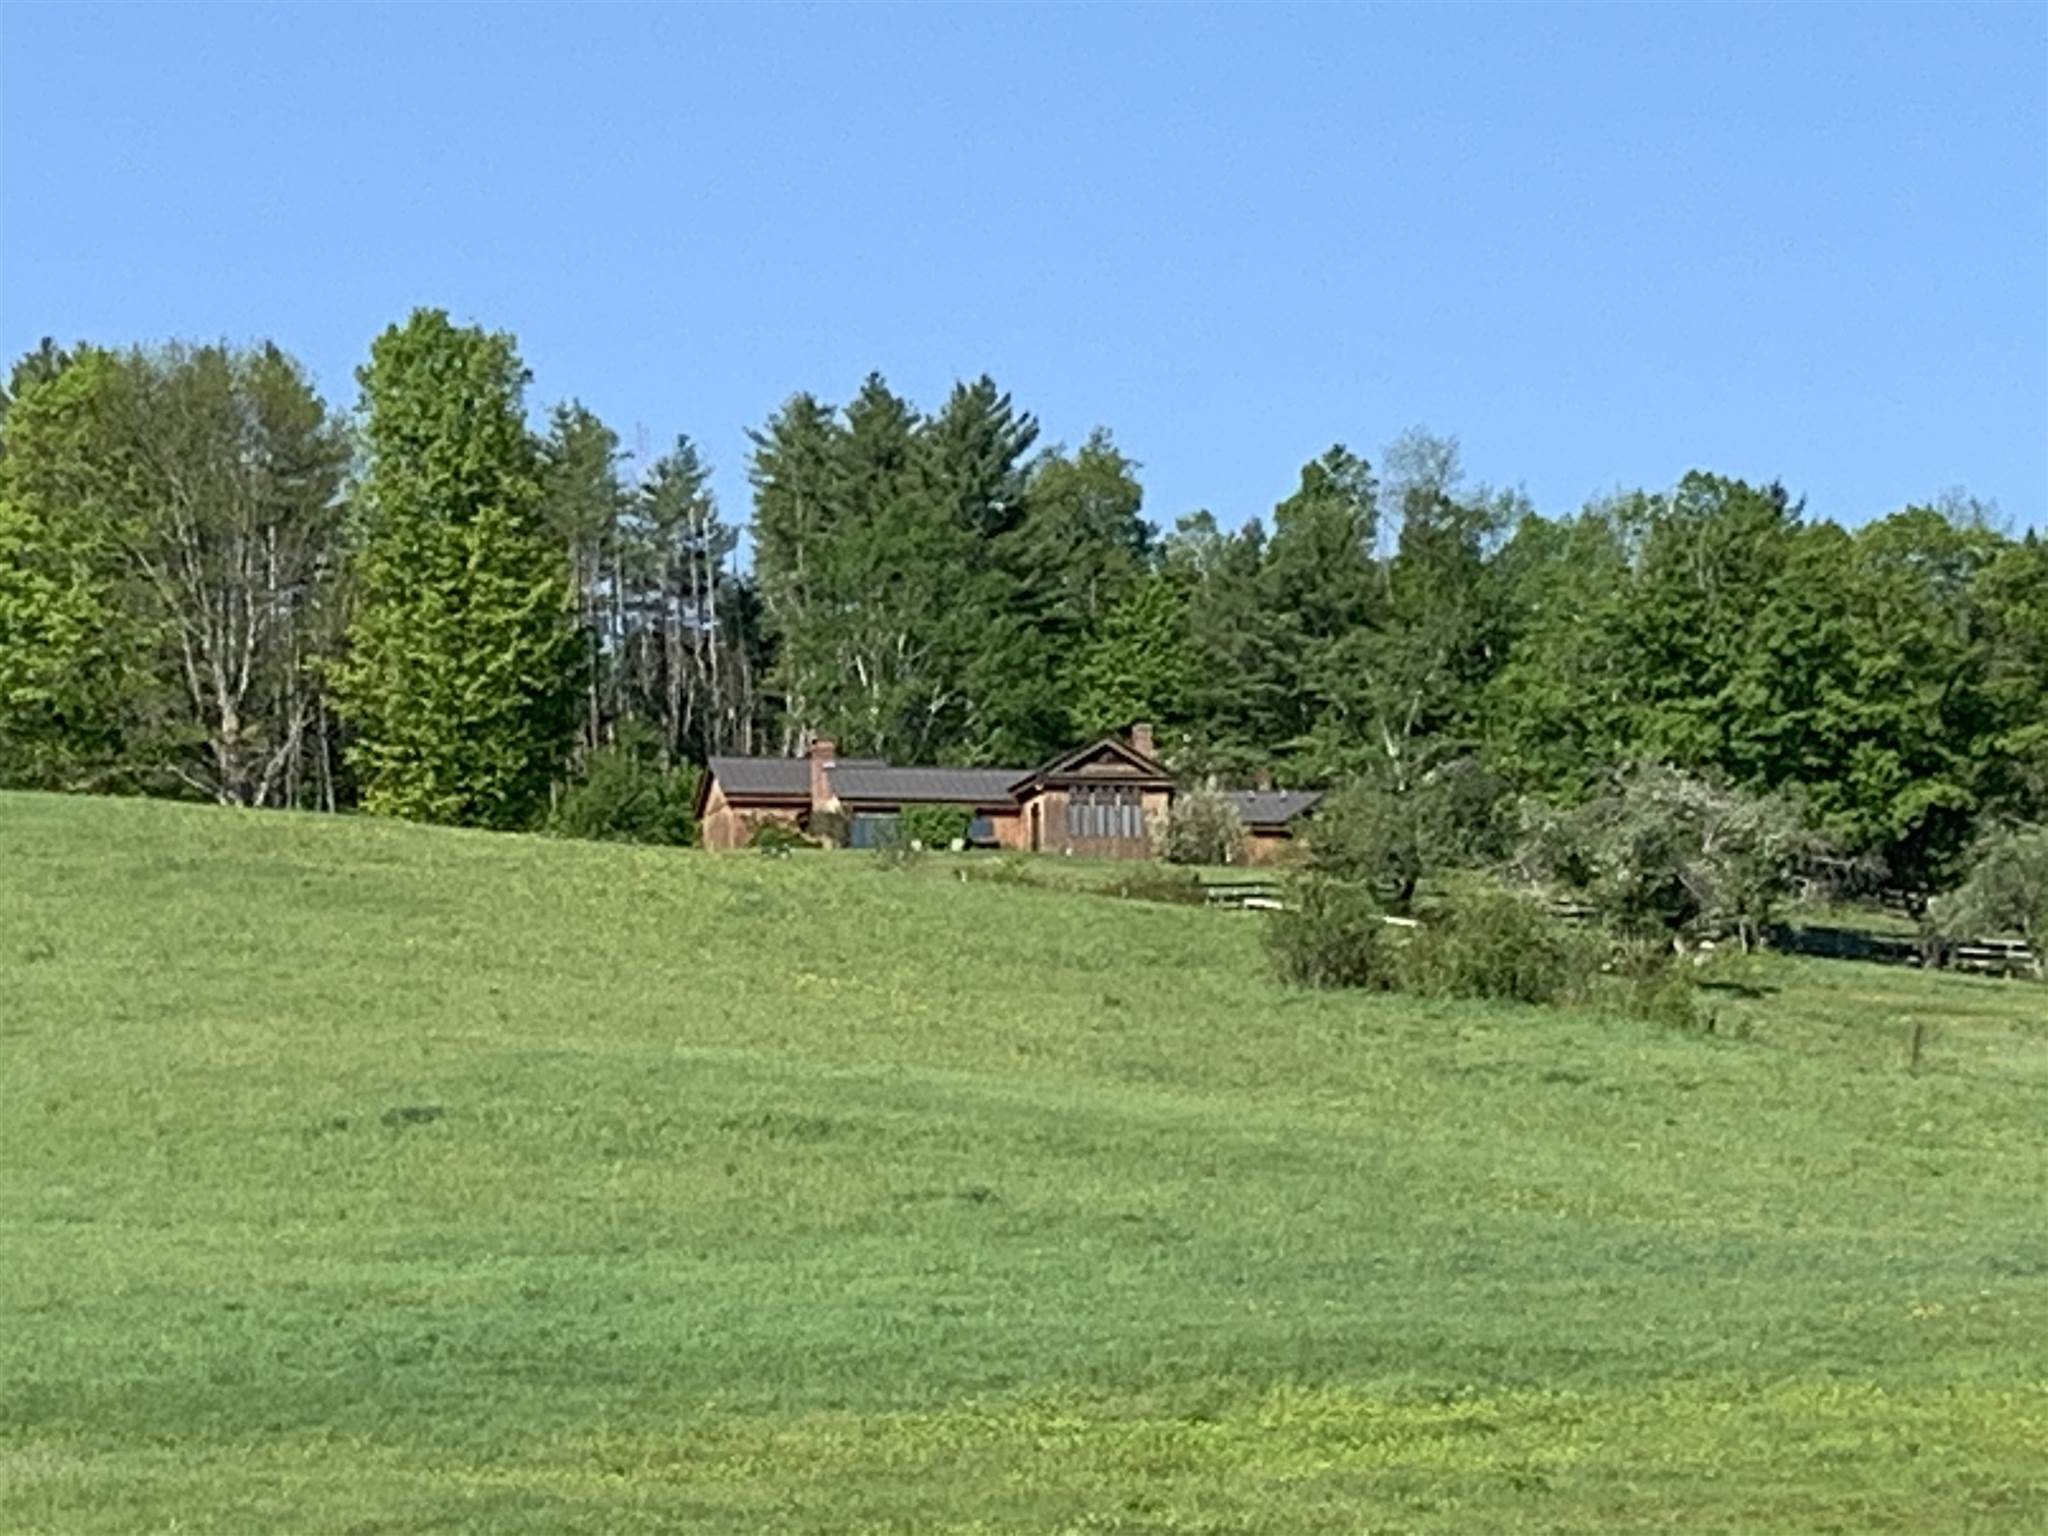 West Windsor VT Home or Farm Acres: 42.8     Beds: 3